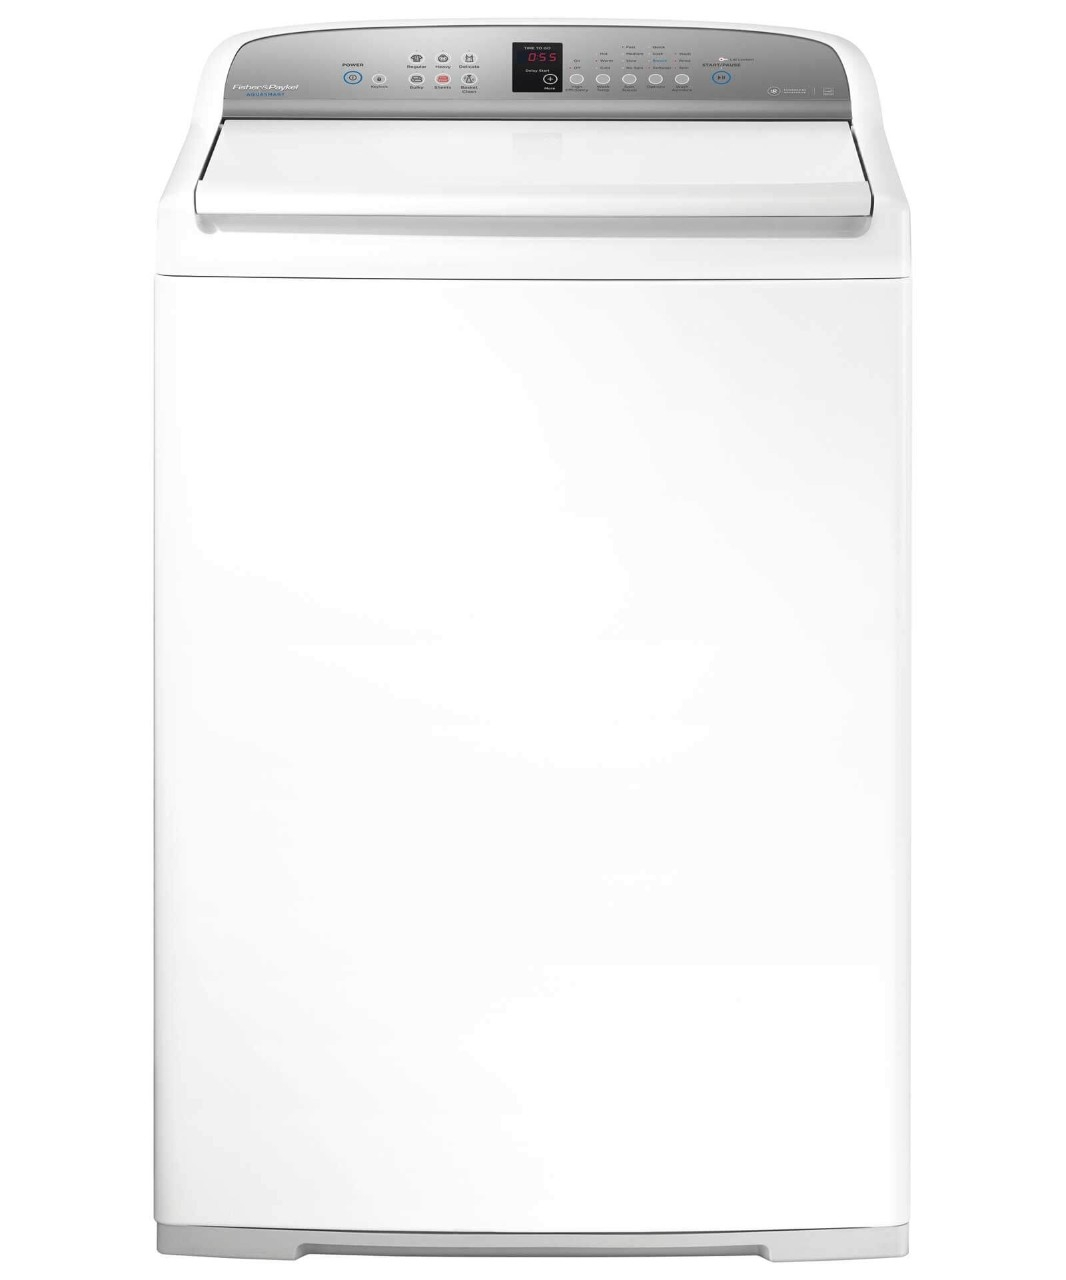 Top Loader Washing Machine, 4 cu ft AquaSmart™ Eco